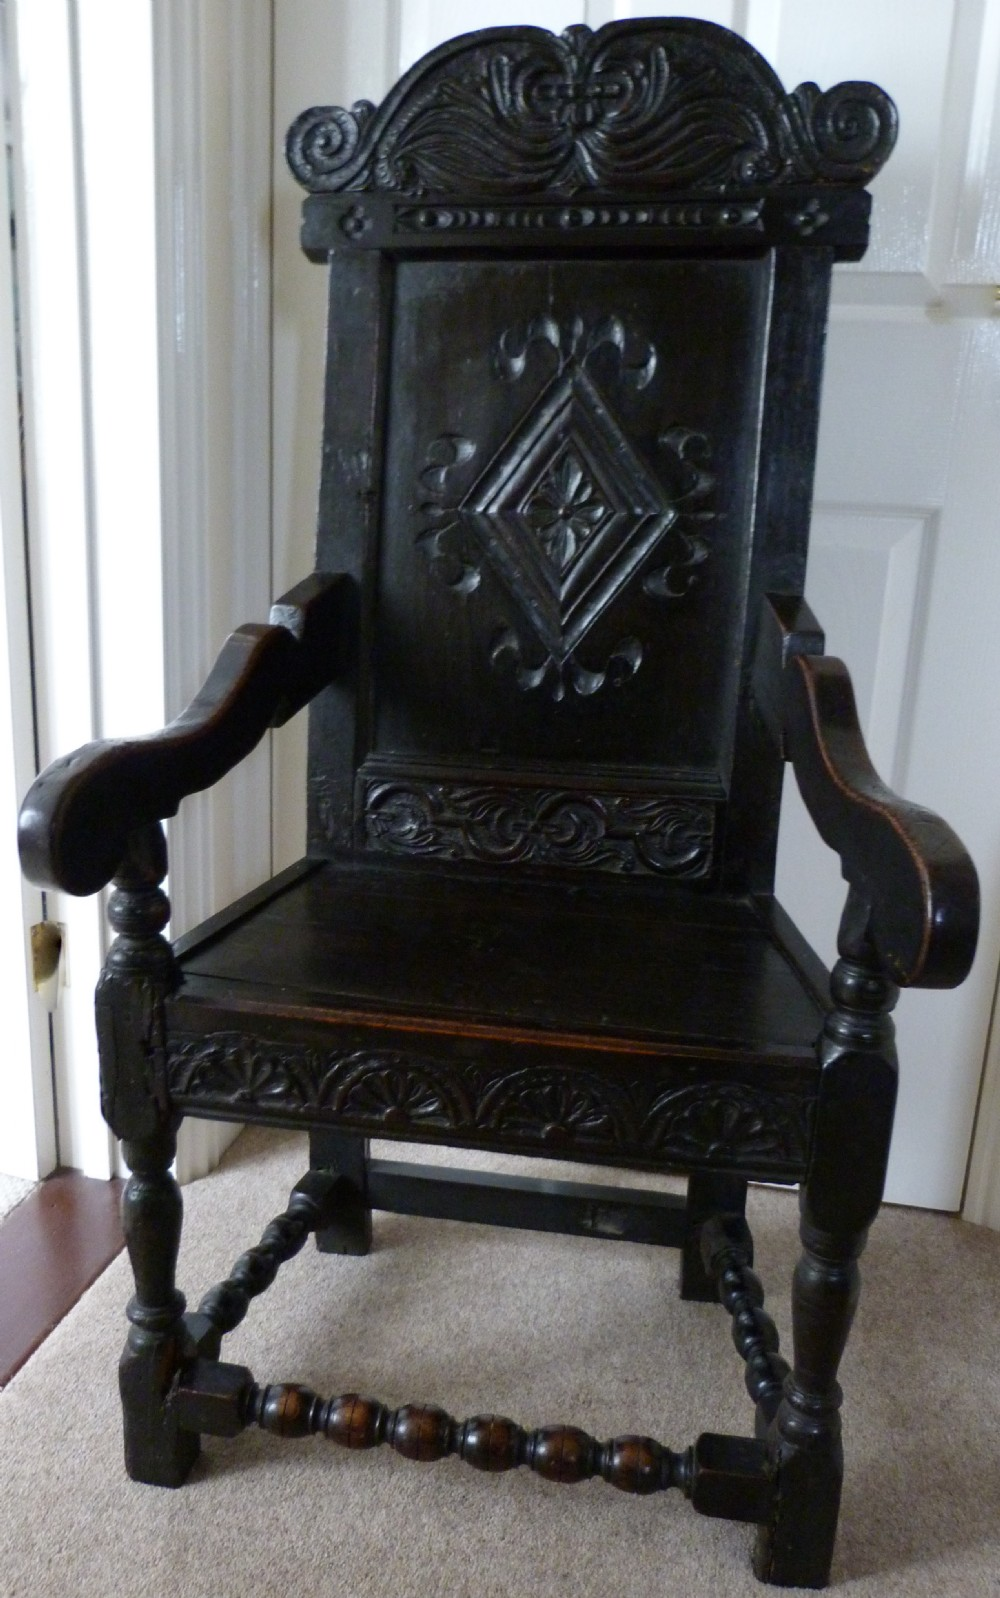 oak wainscot chair c1660 and later